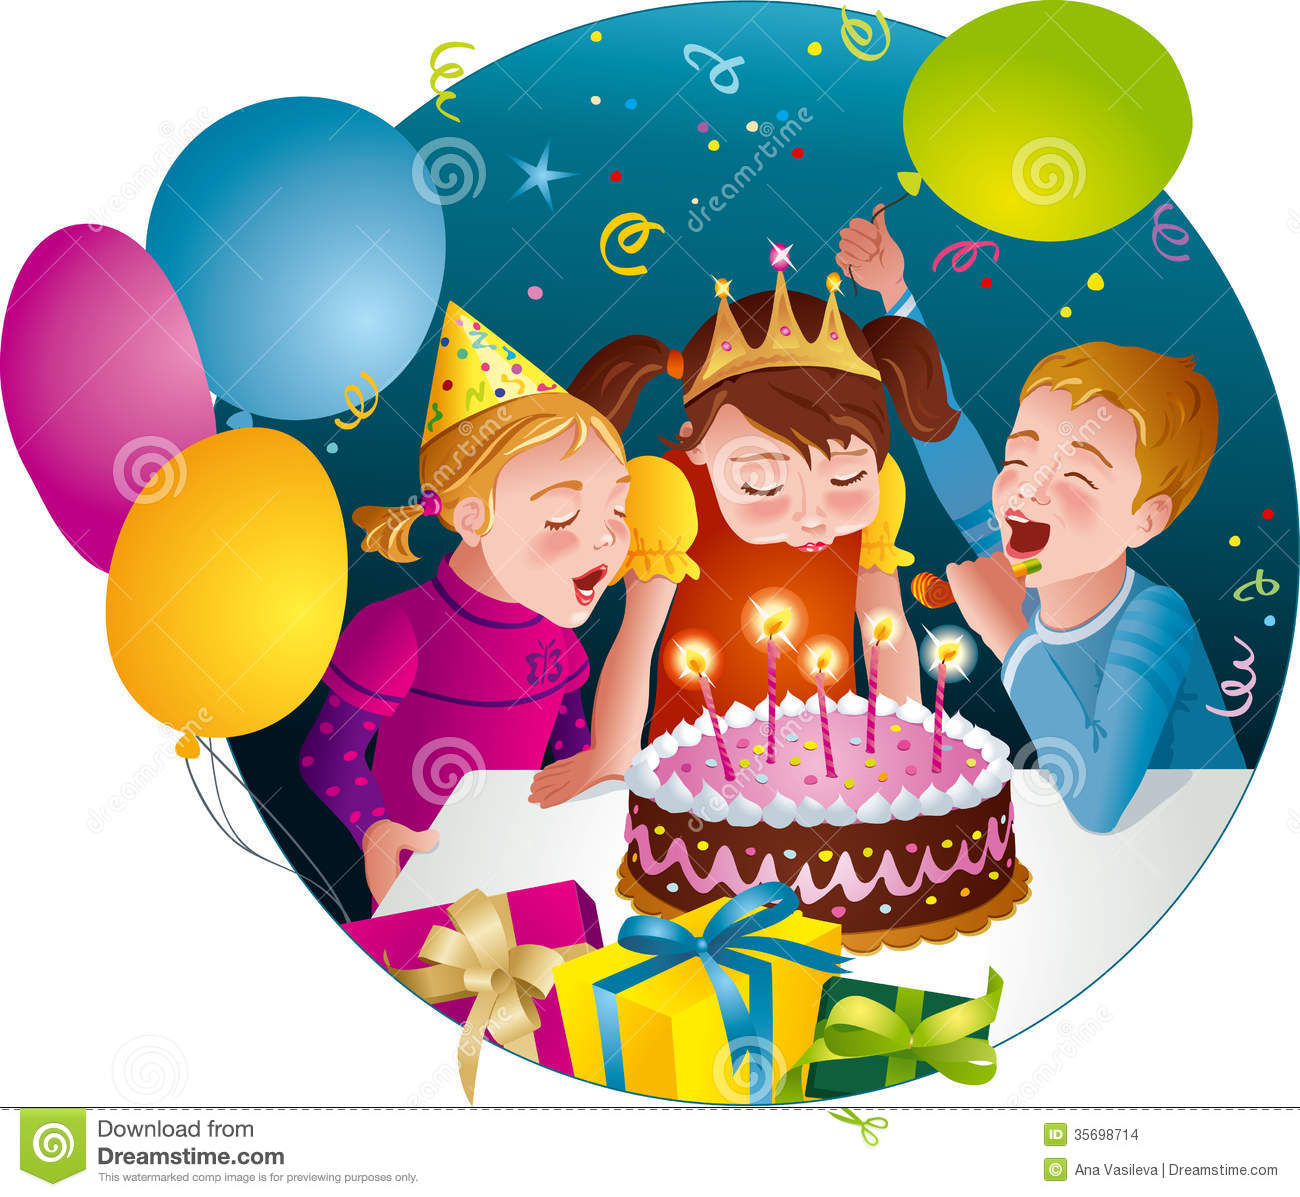 free animated birthday clipart images ; funny-animated-birthday-clipart-1